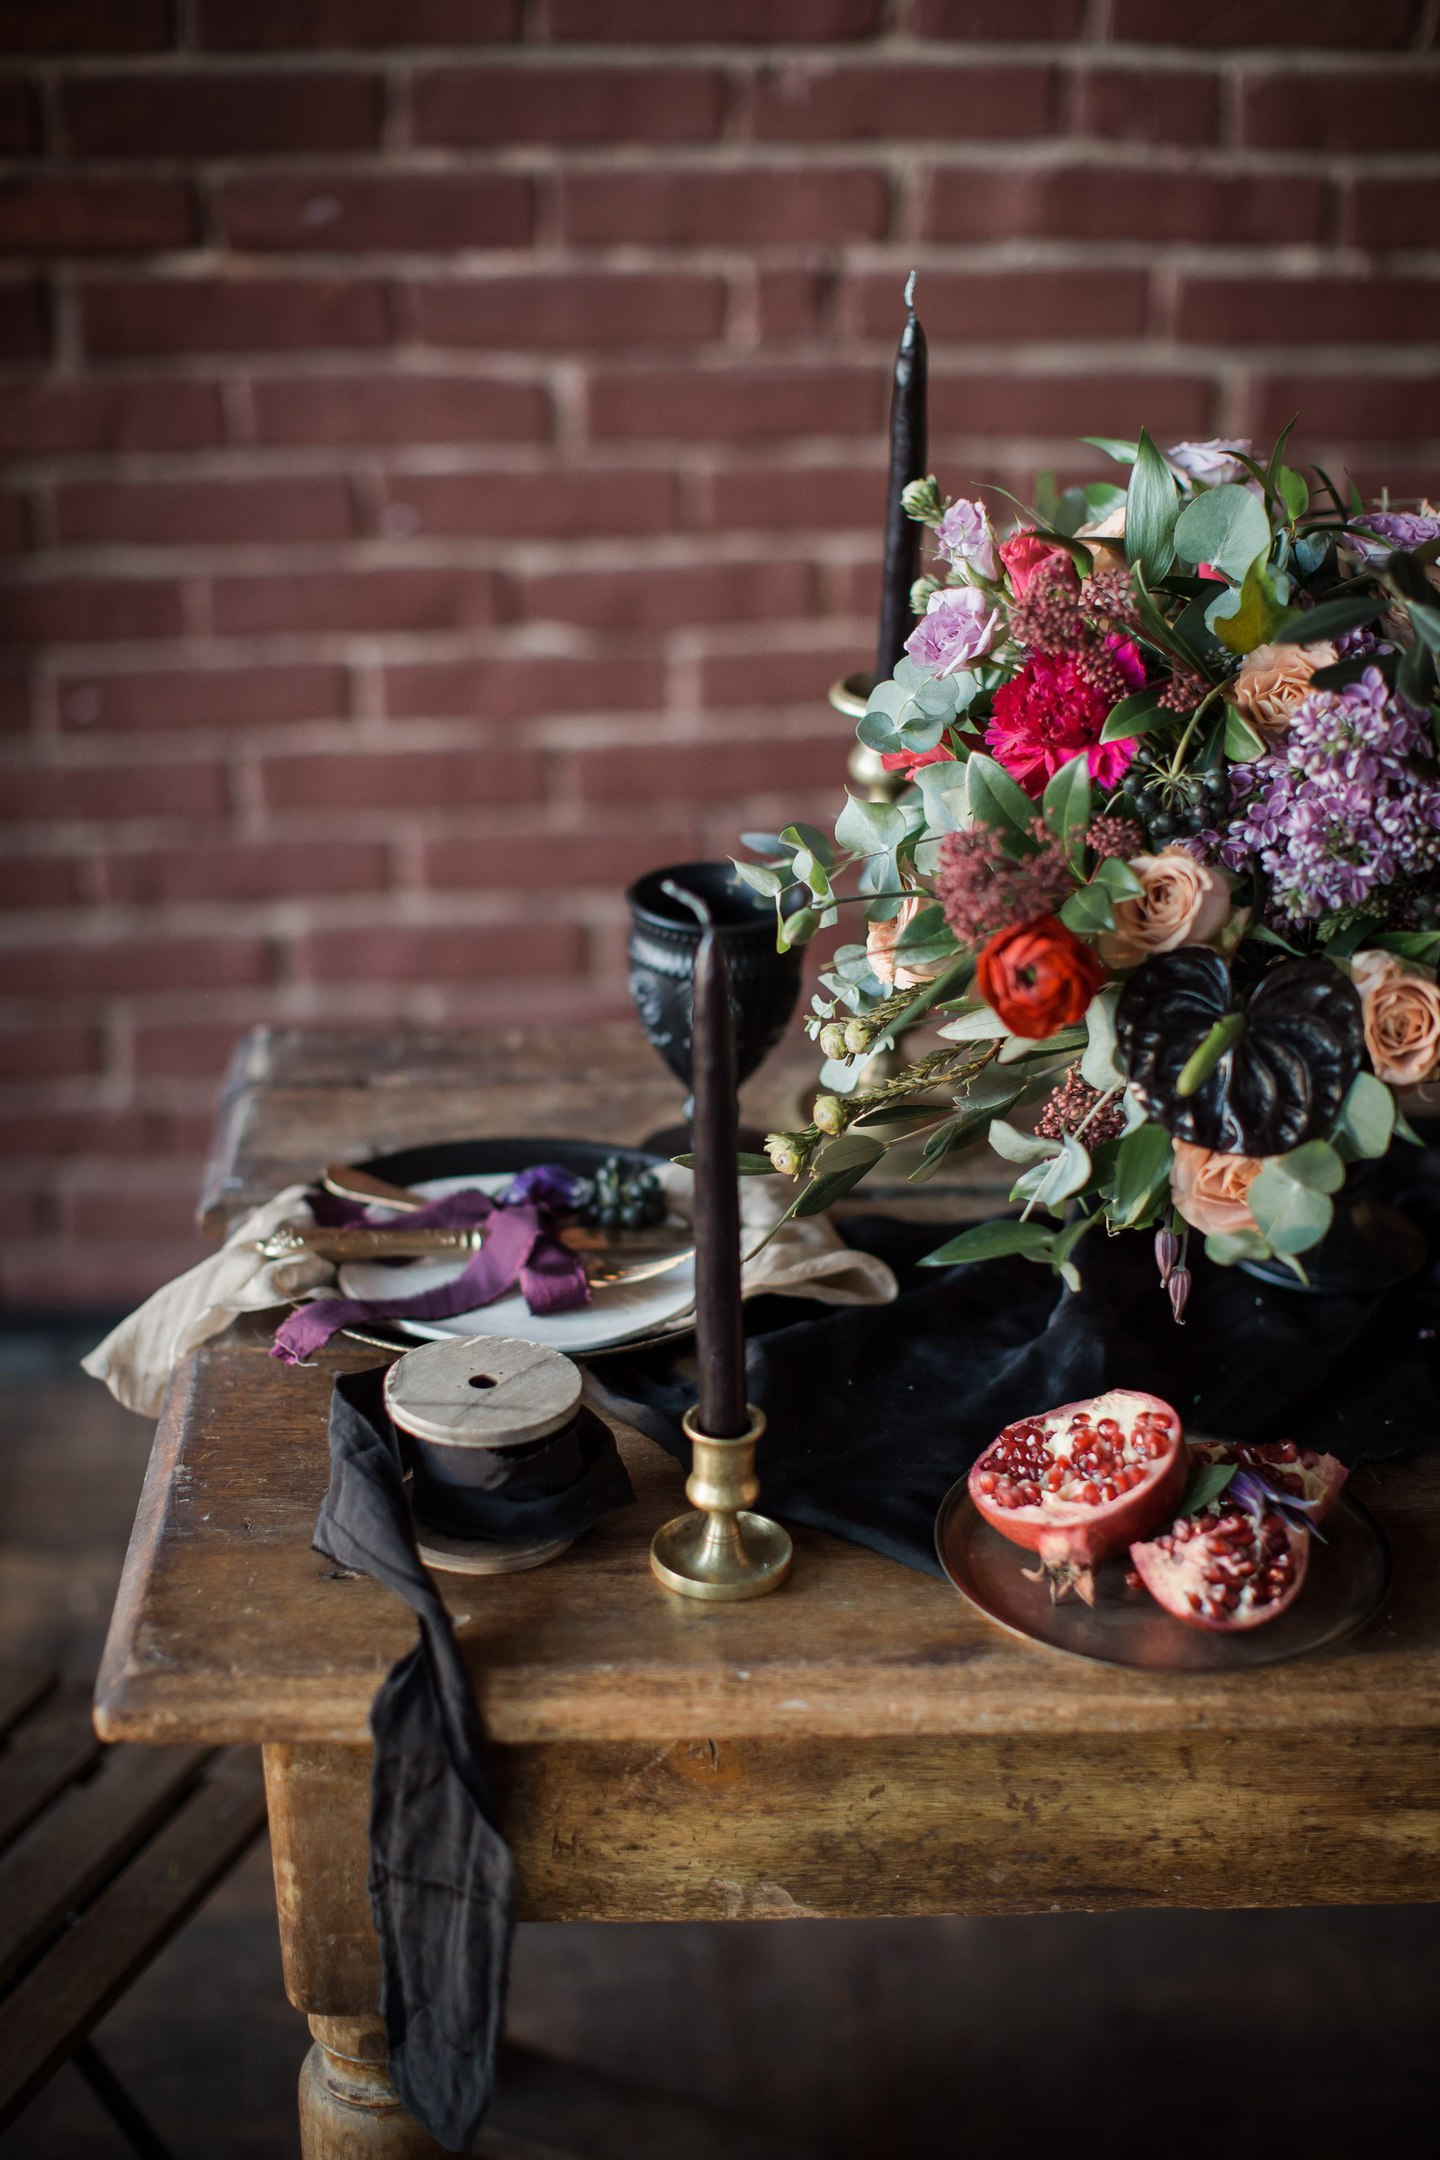 decor flowers table candle wallpaper